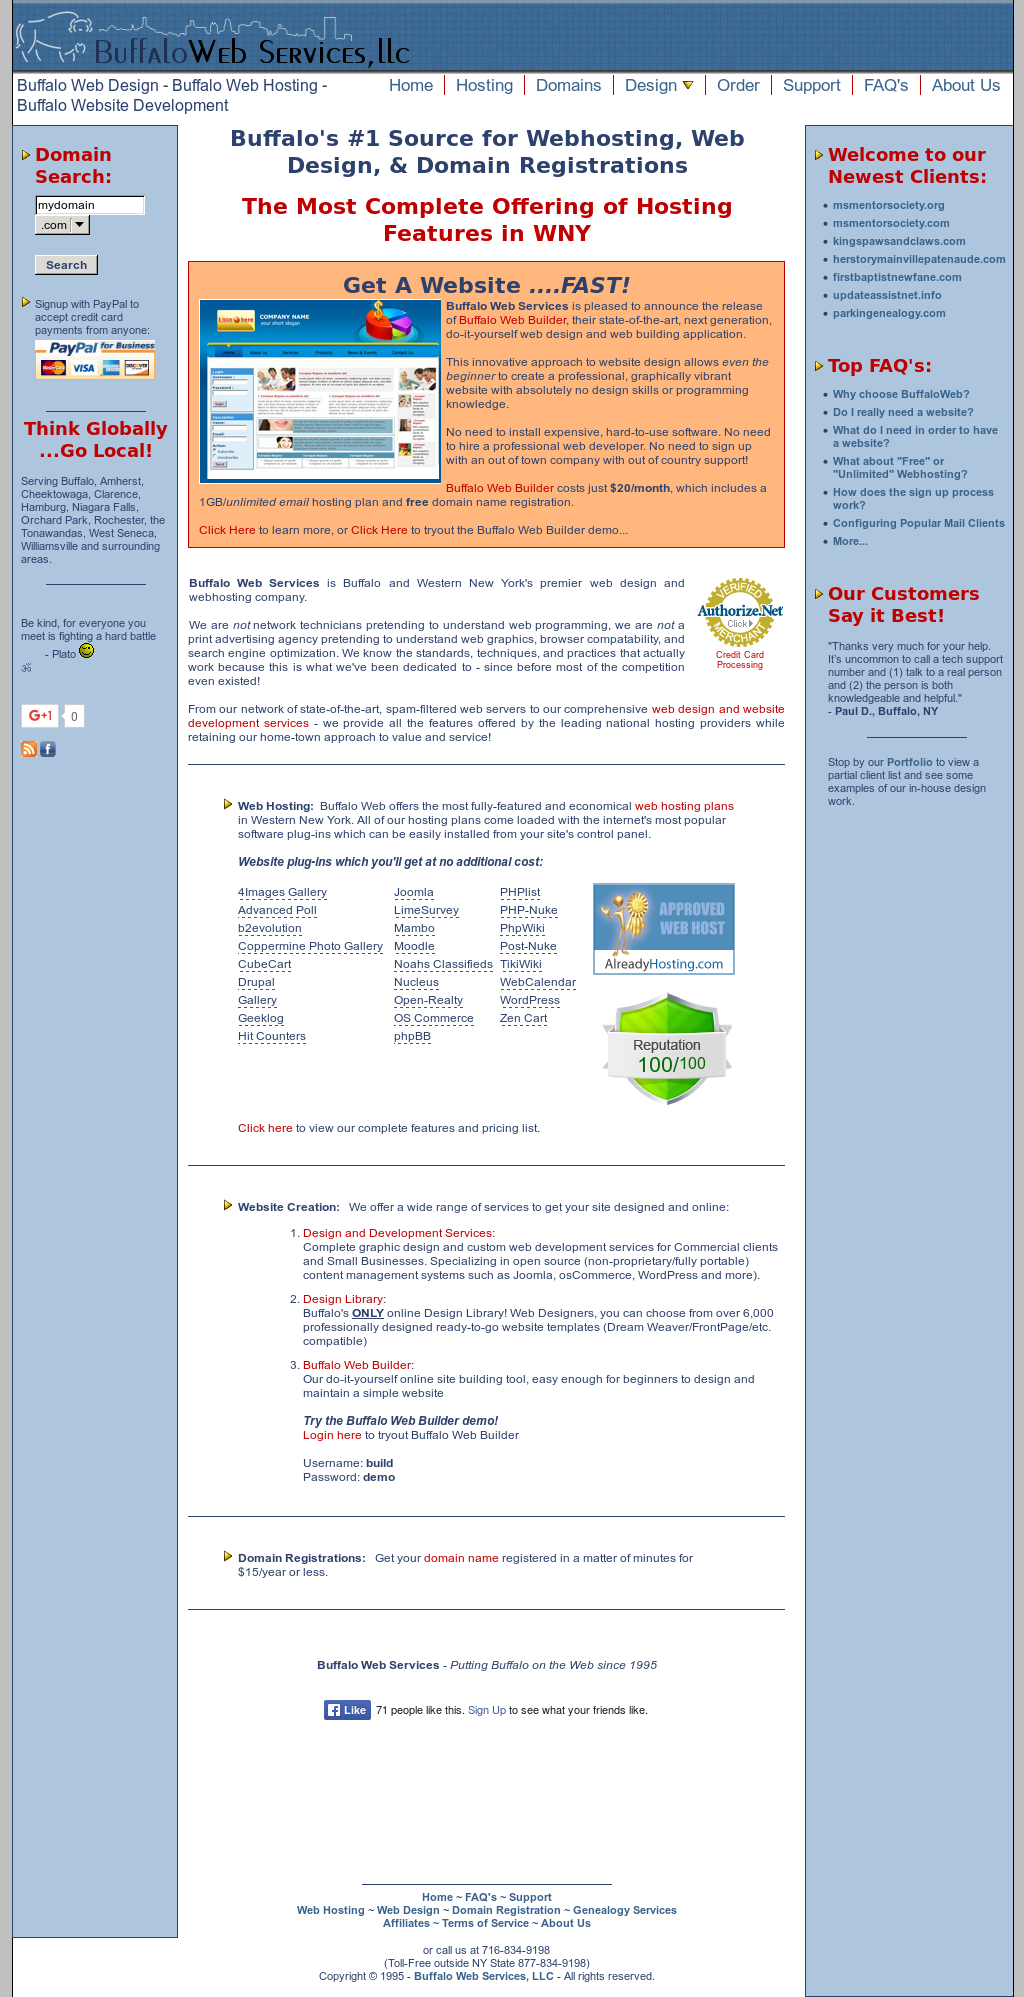 Tolle Phplist E Mail Vorlagen Galerie - Entry Level Resume Vorlagen ...